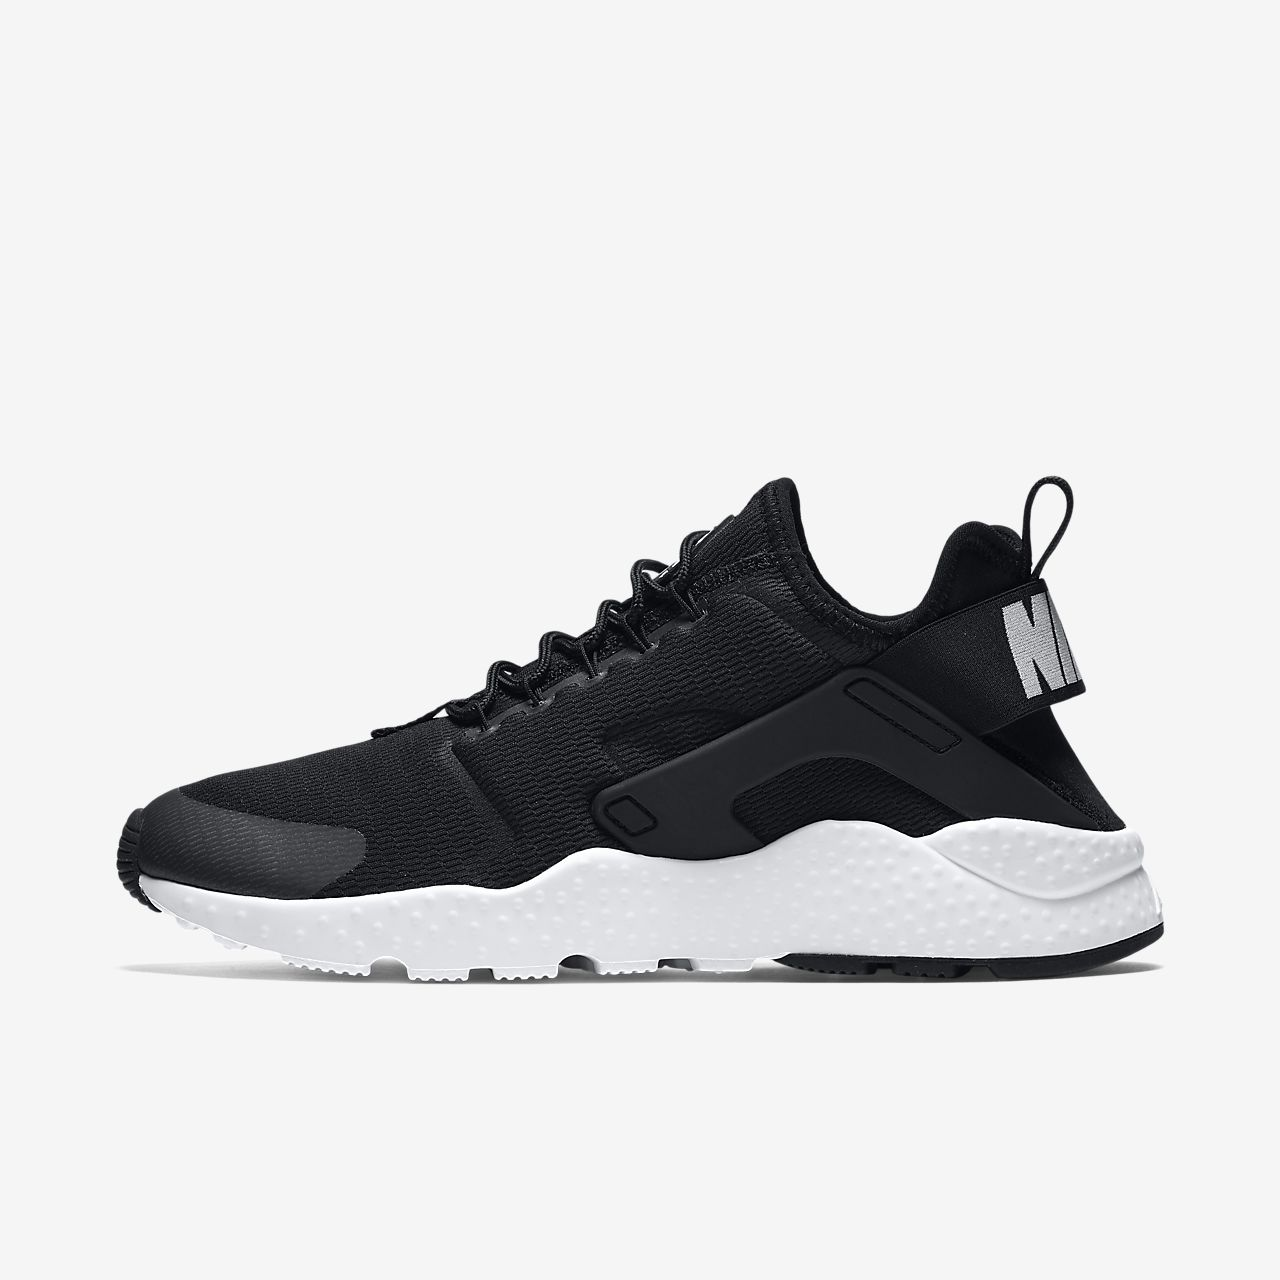 9b6451f2ab Nike Huarache : Nike Sneakers Online at Best Prices | Backalleymusic.ca